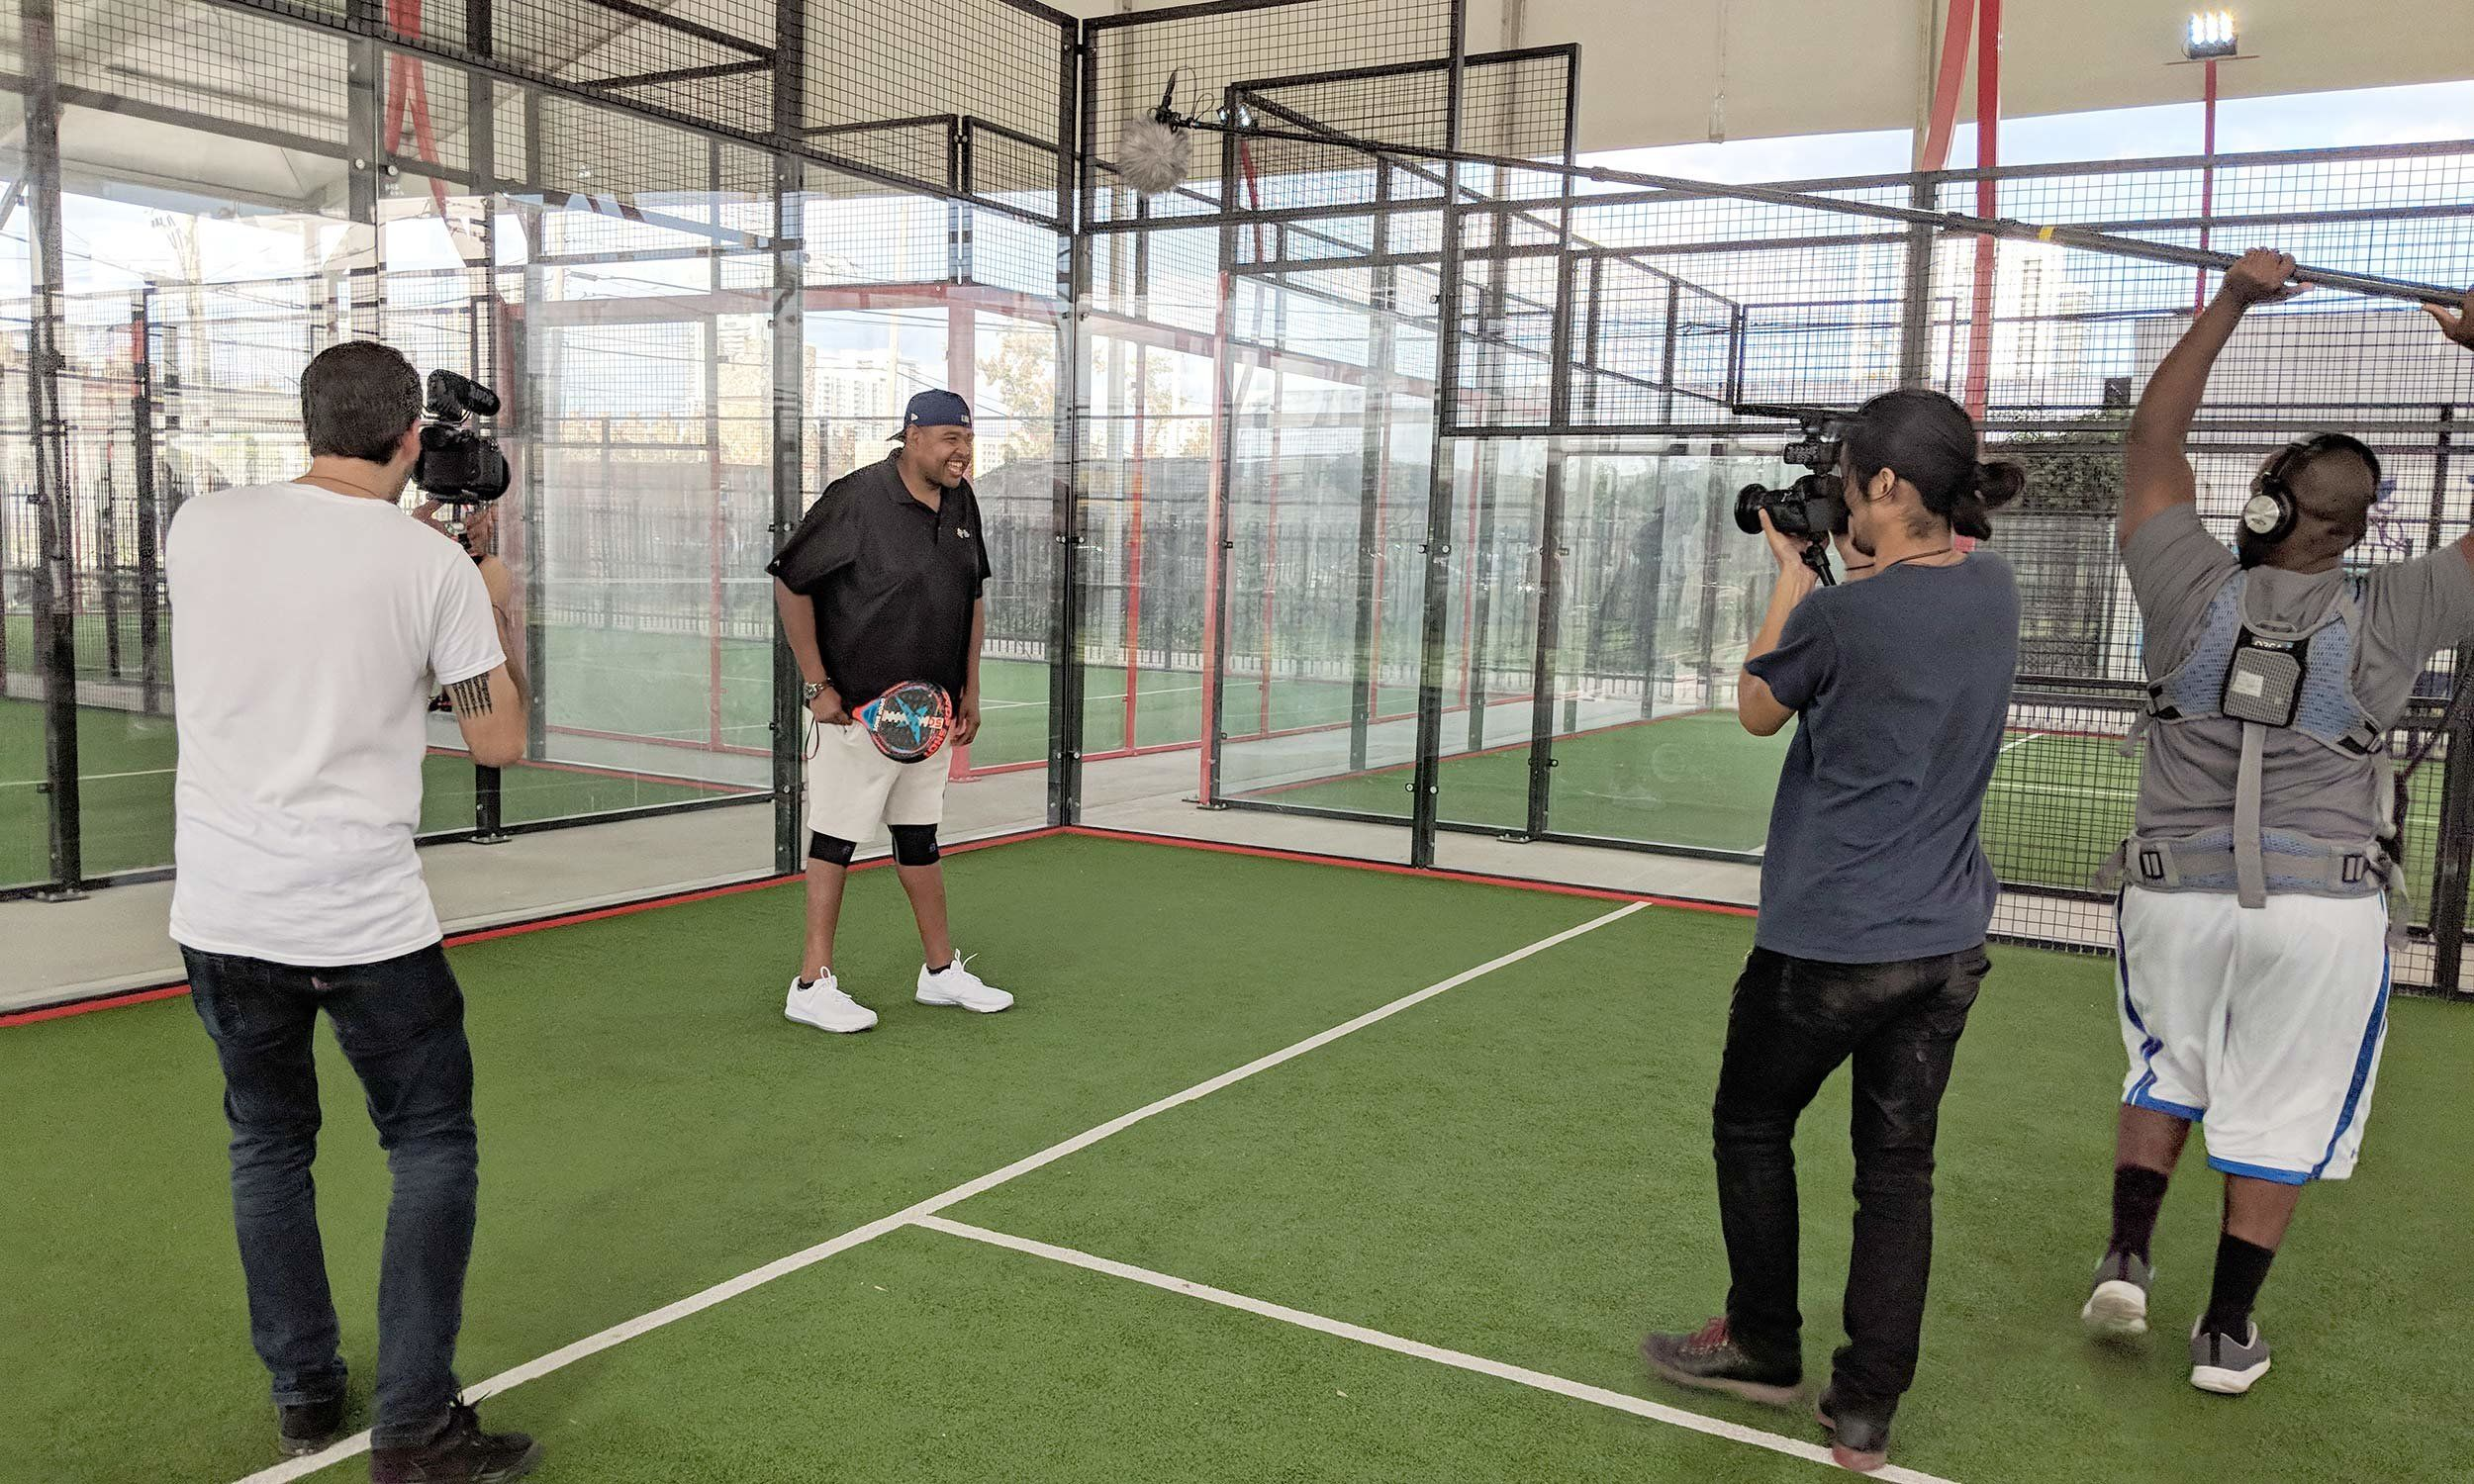 Actor Omar Miller on a squash court for a video/photo shoot.